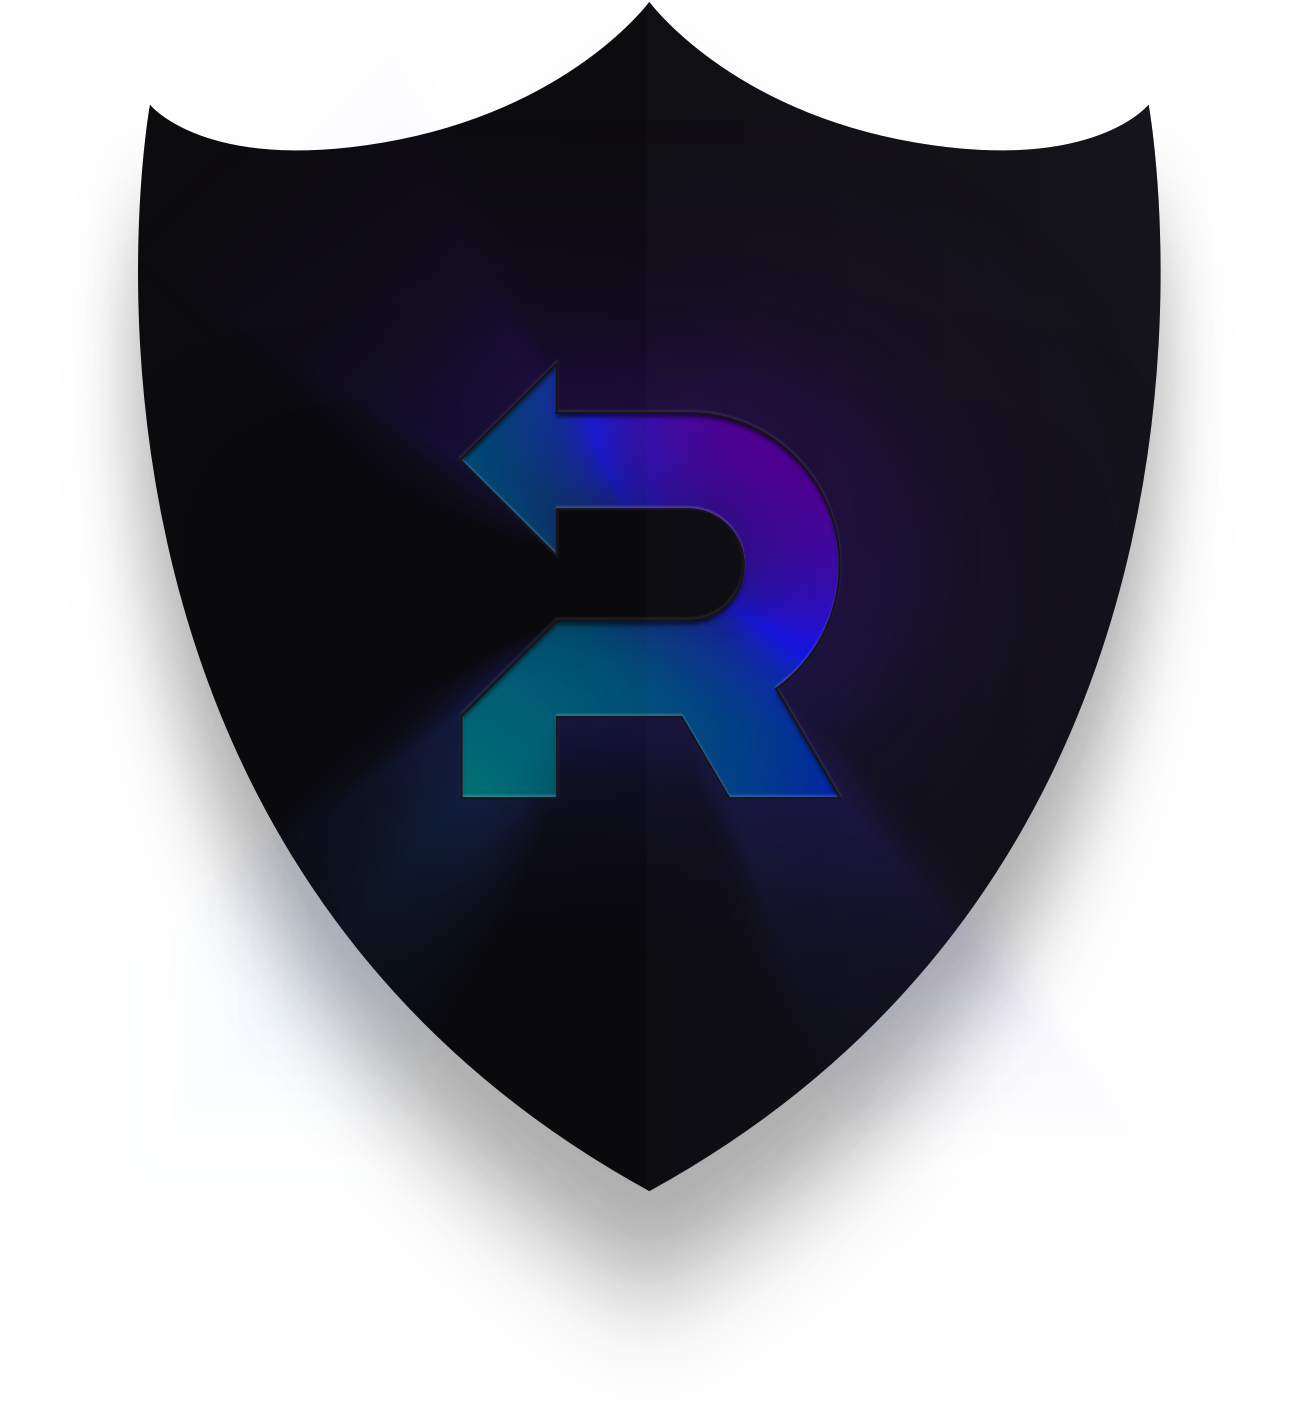 https://revoke.com/wp-content/uploads/2019/11/Security-revoke-sheild.png